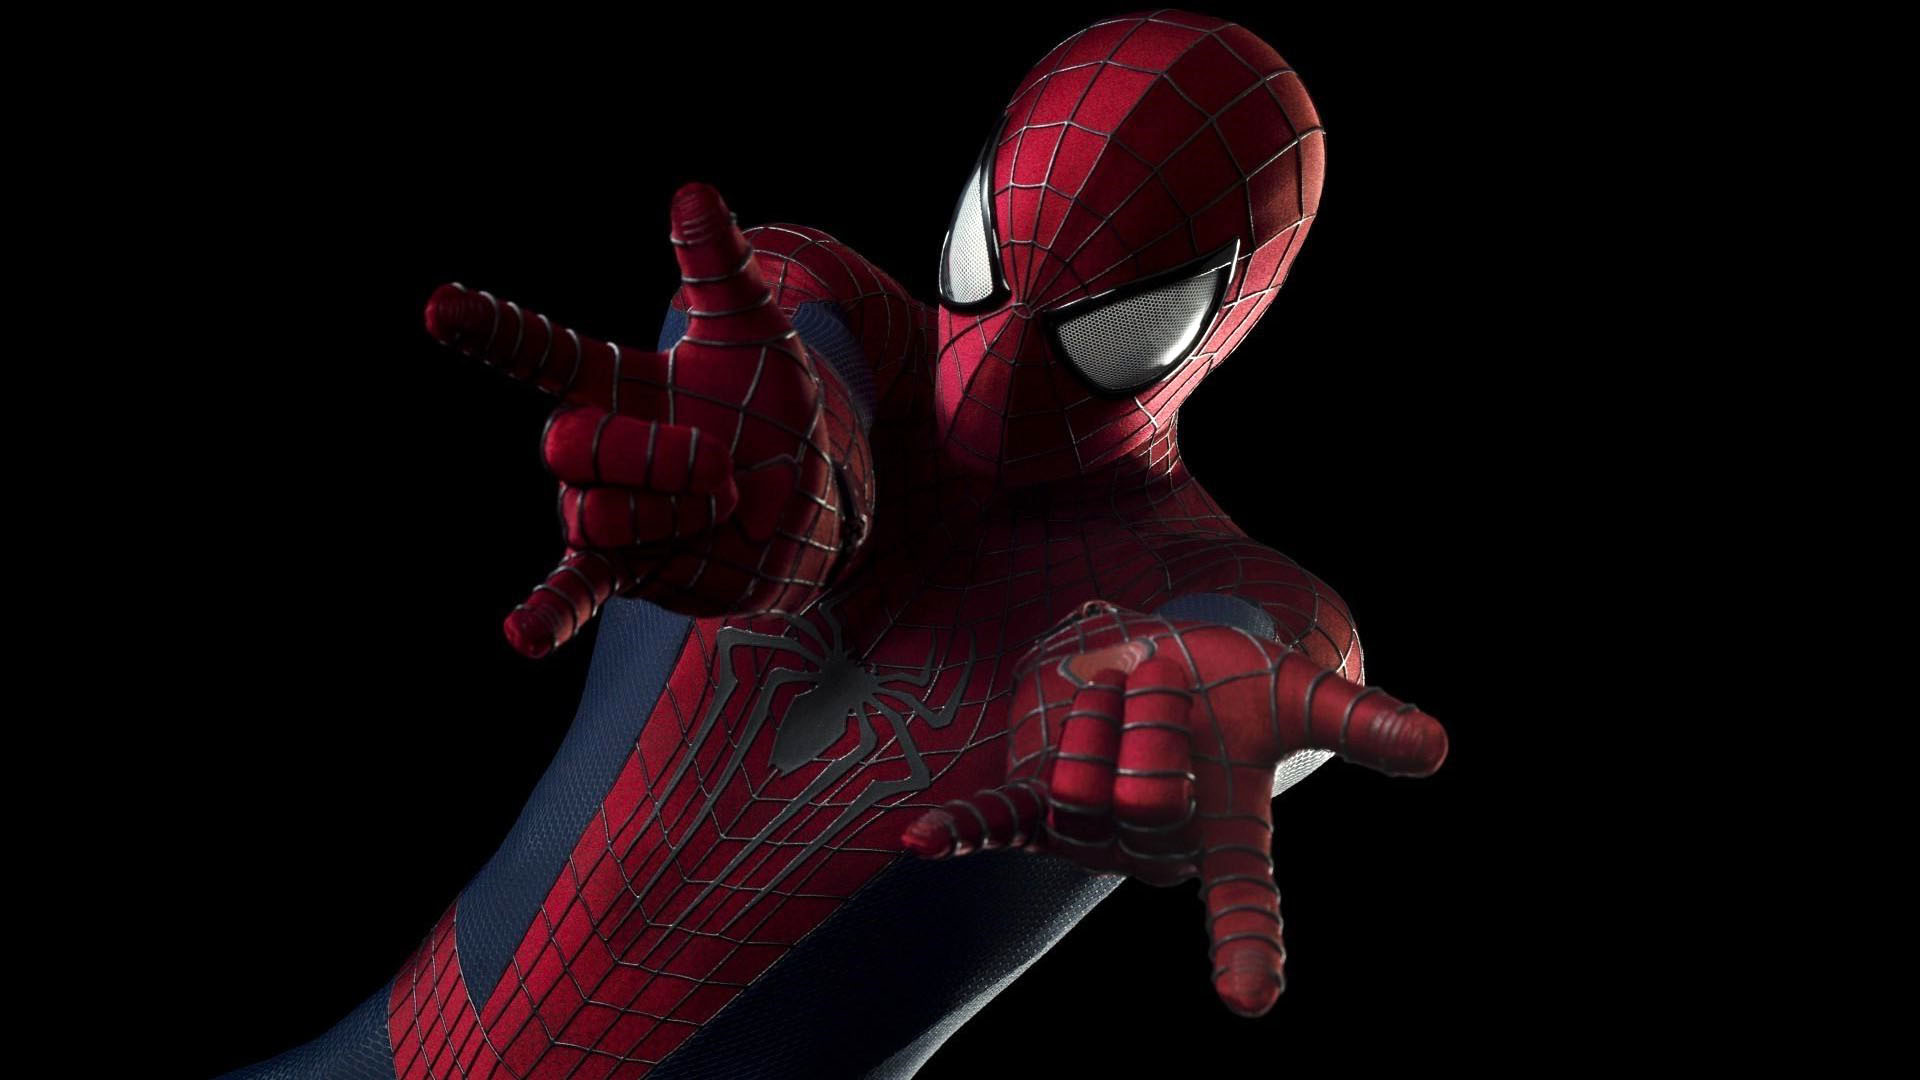 1920x1080 Spider Man Web Shooting Background Wallpaper ...